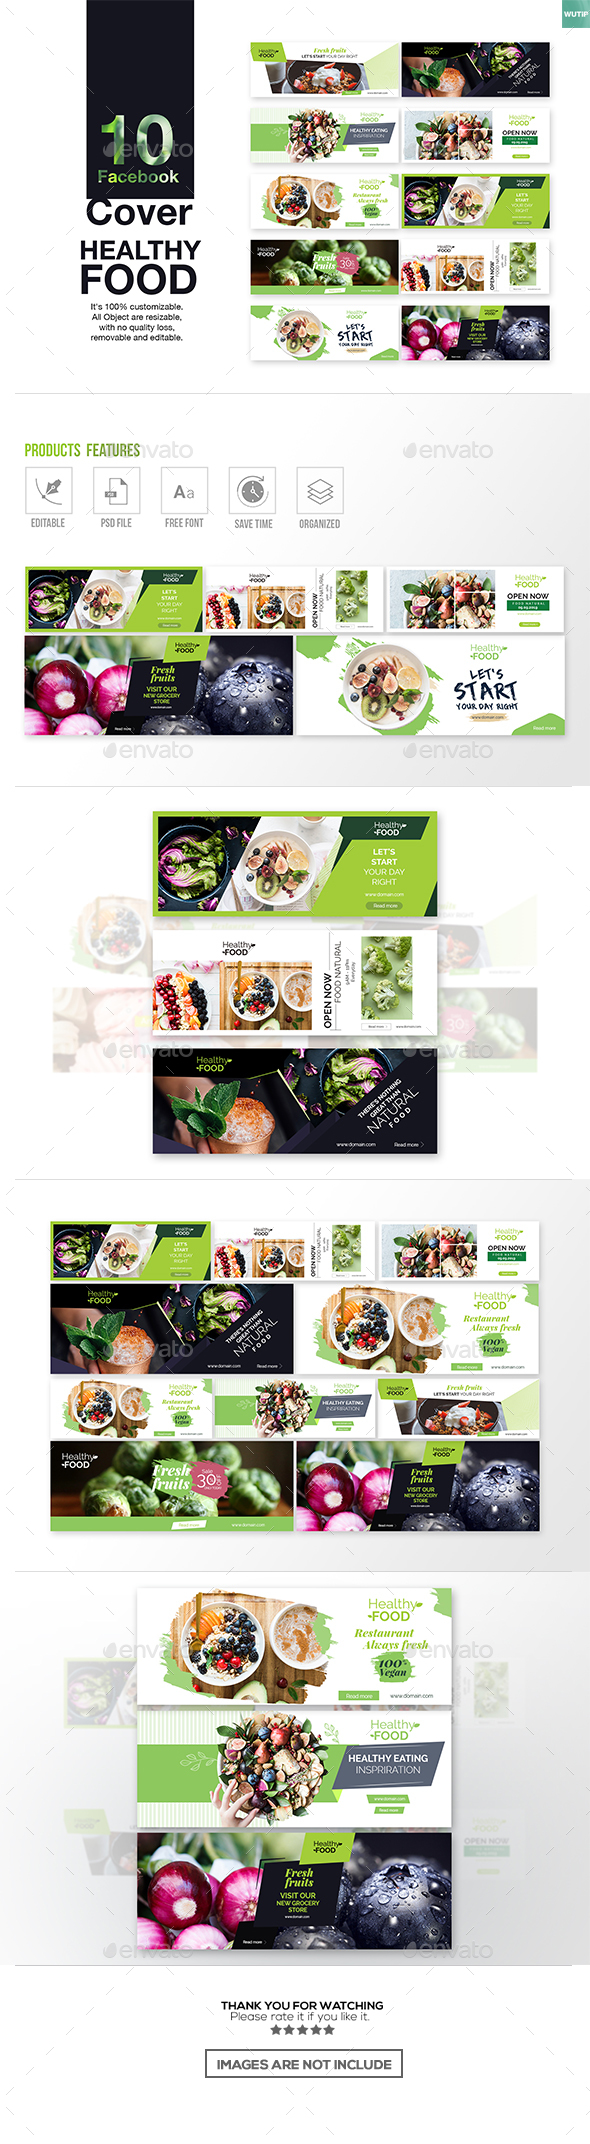 10 Facebook Cover- Healthy Food - Facebook Timeline Covers Social Media